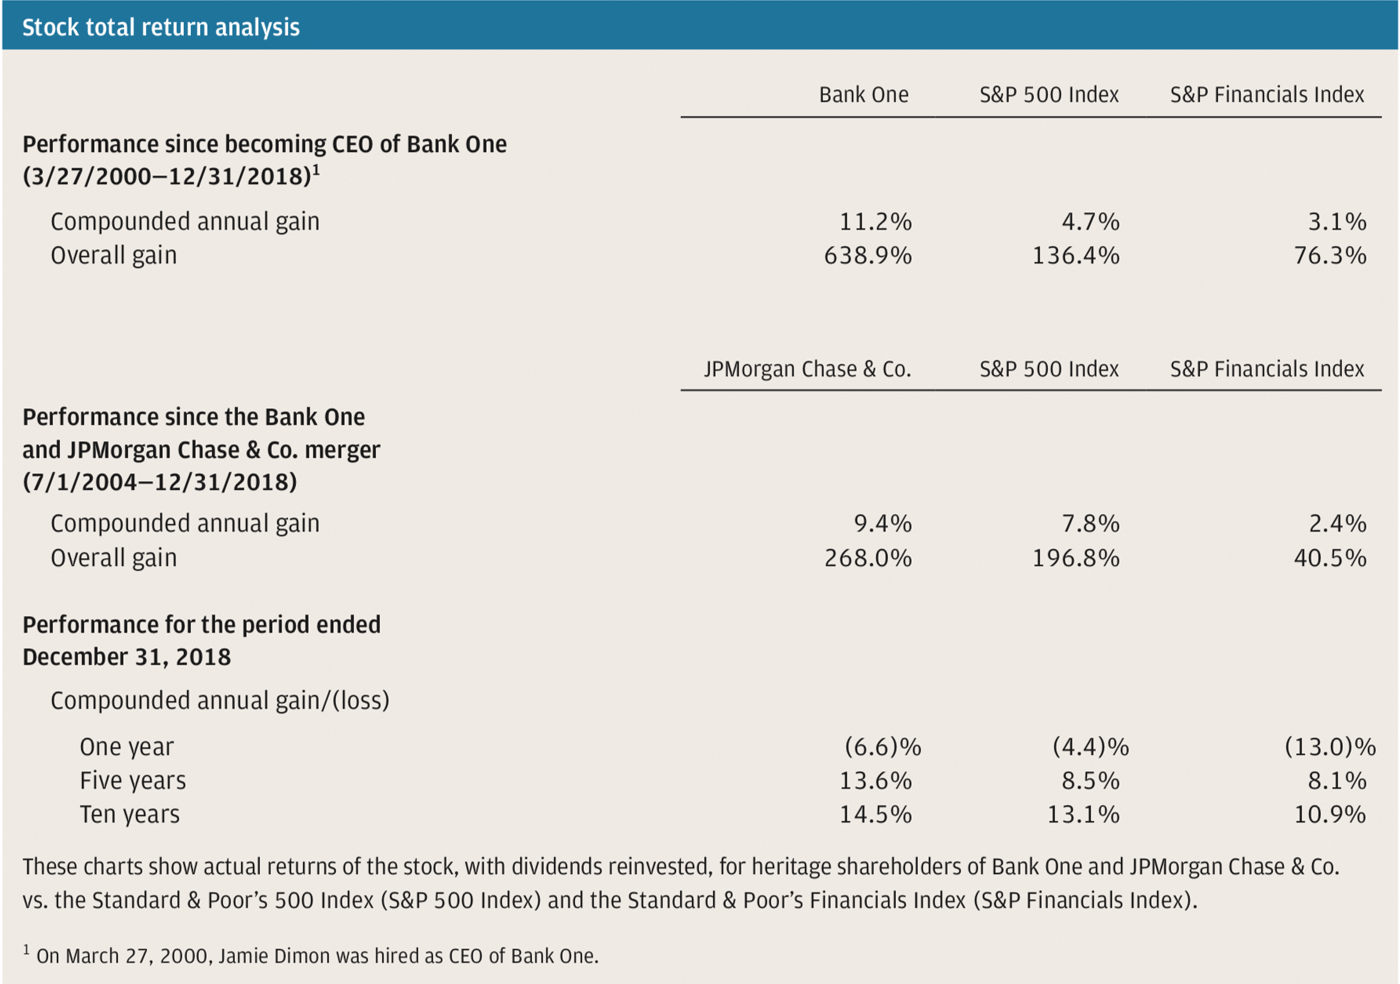 Stock total return analysis